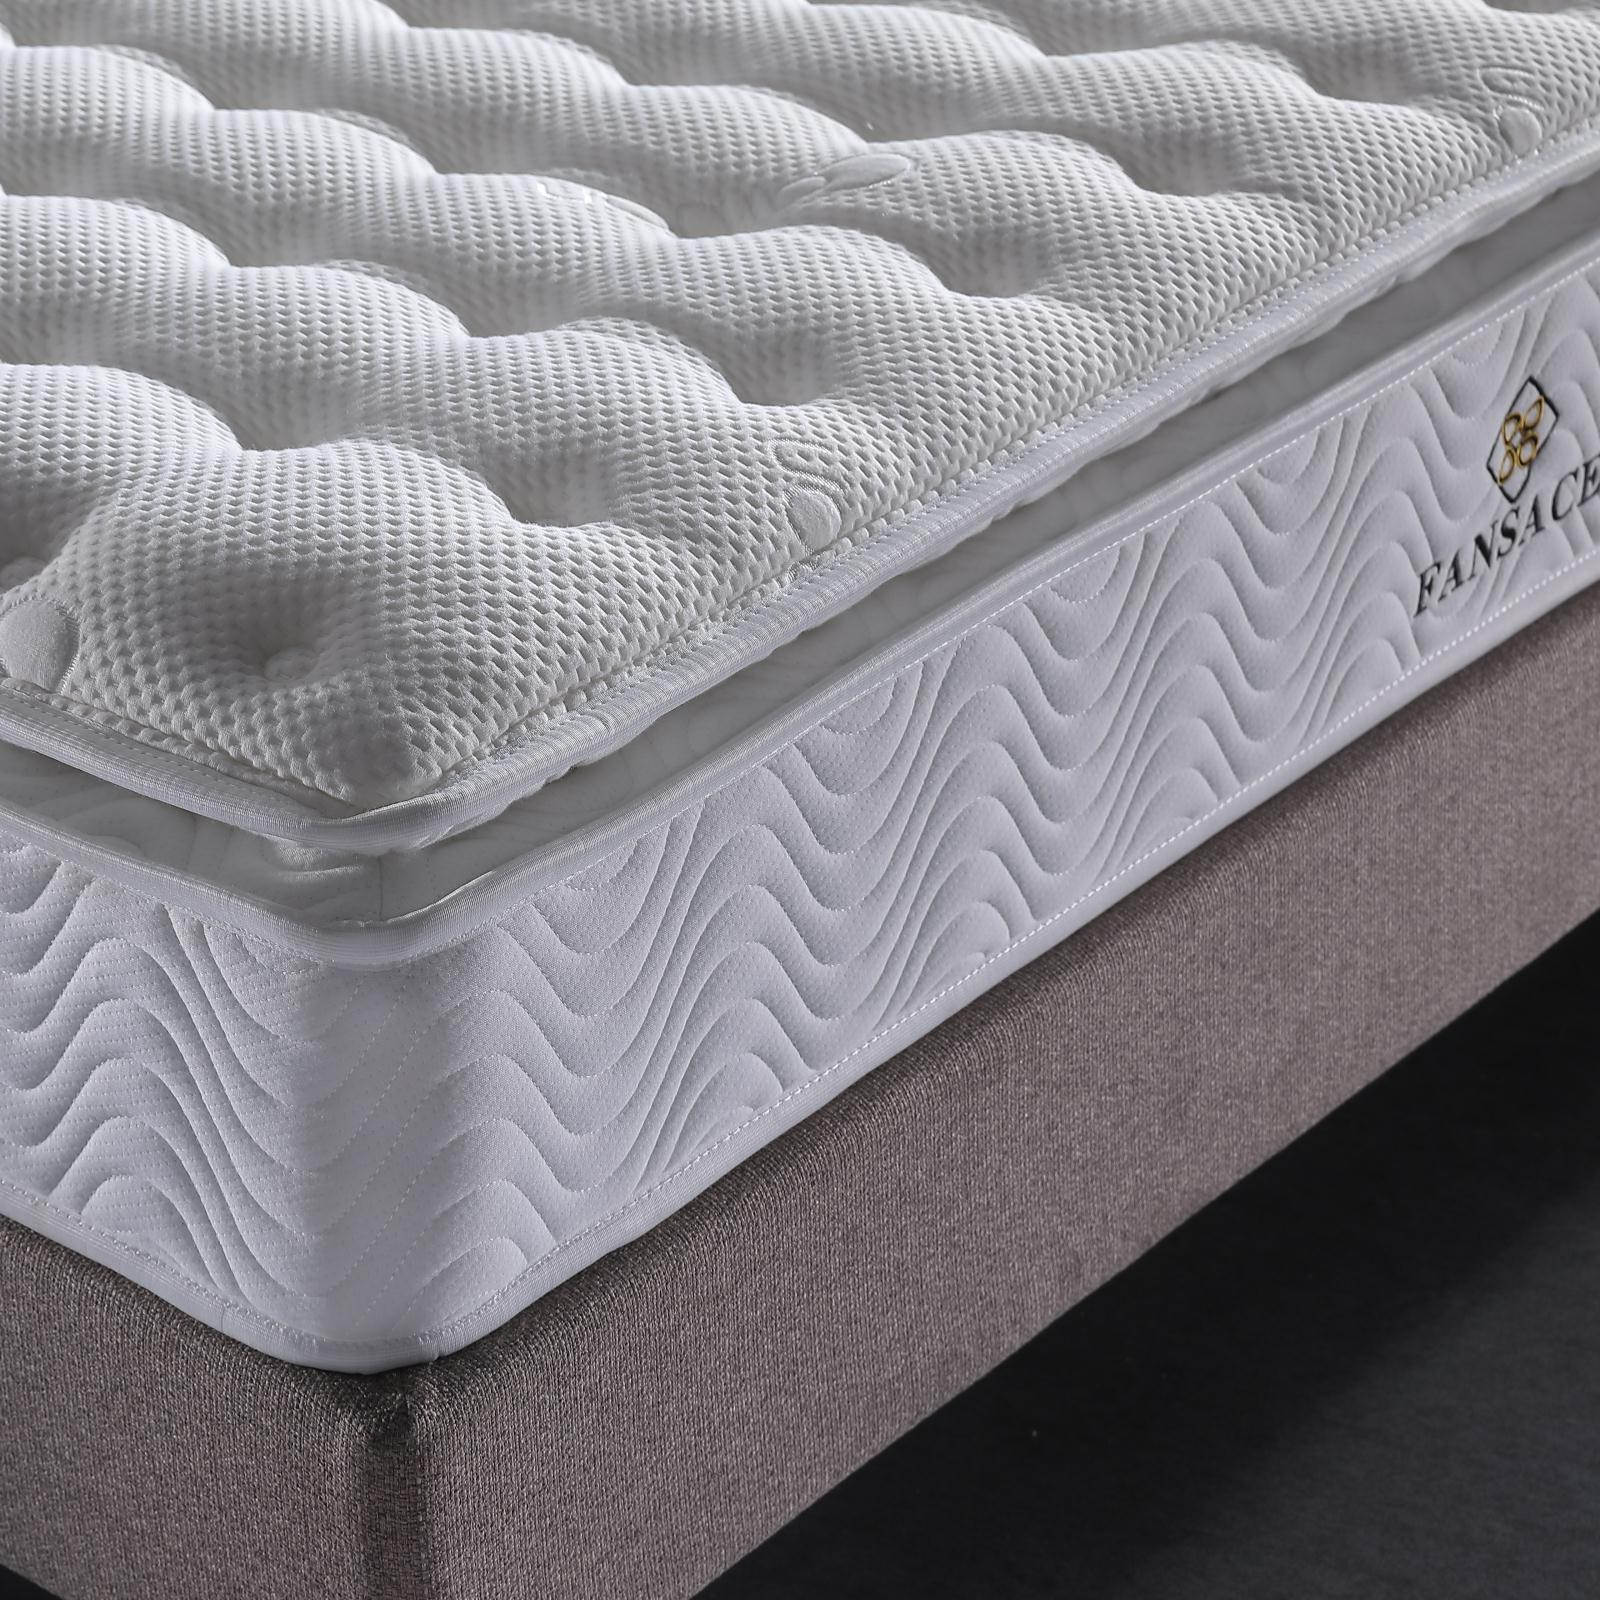 Fansace 32BA-01 | Hotel Latex Mattress Supplier from China Manufacturer